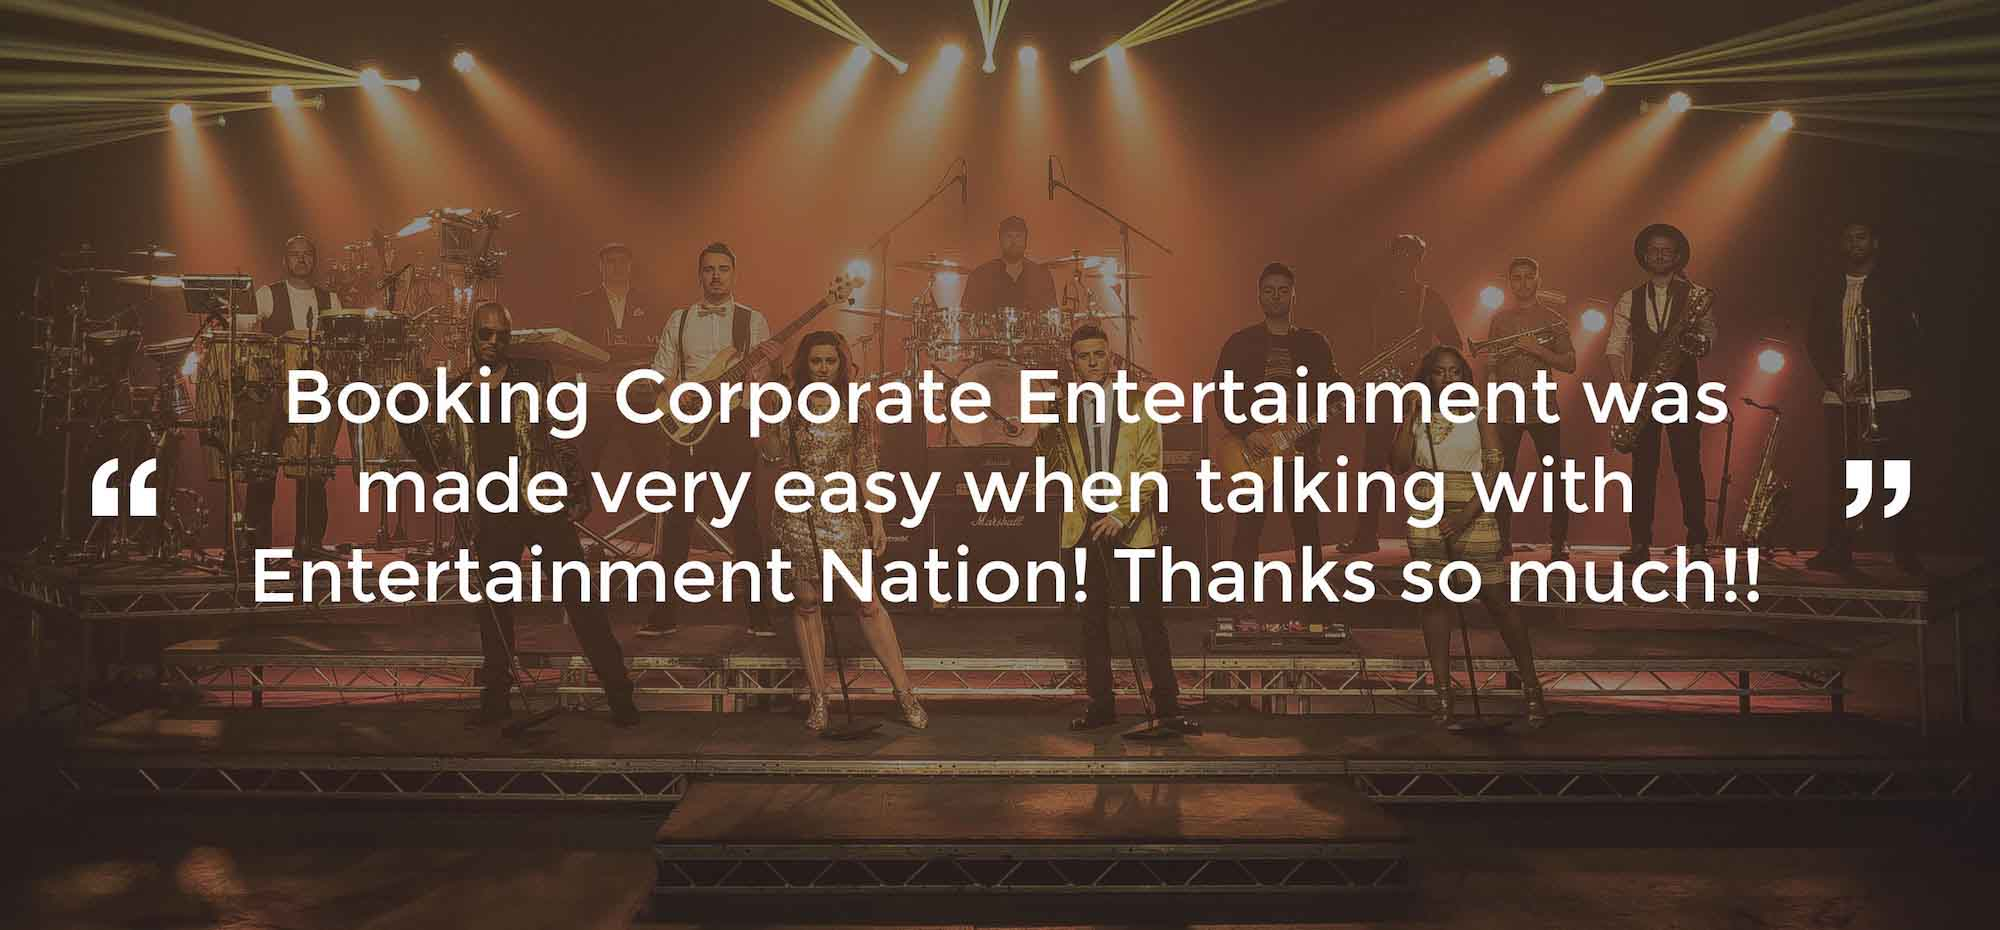 Review of Corporate Entertainment Norwich